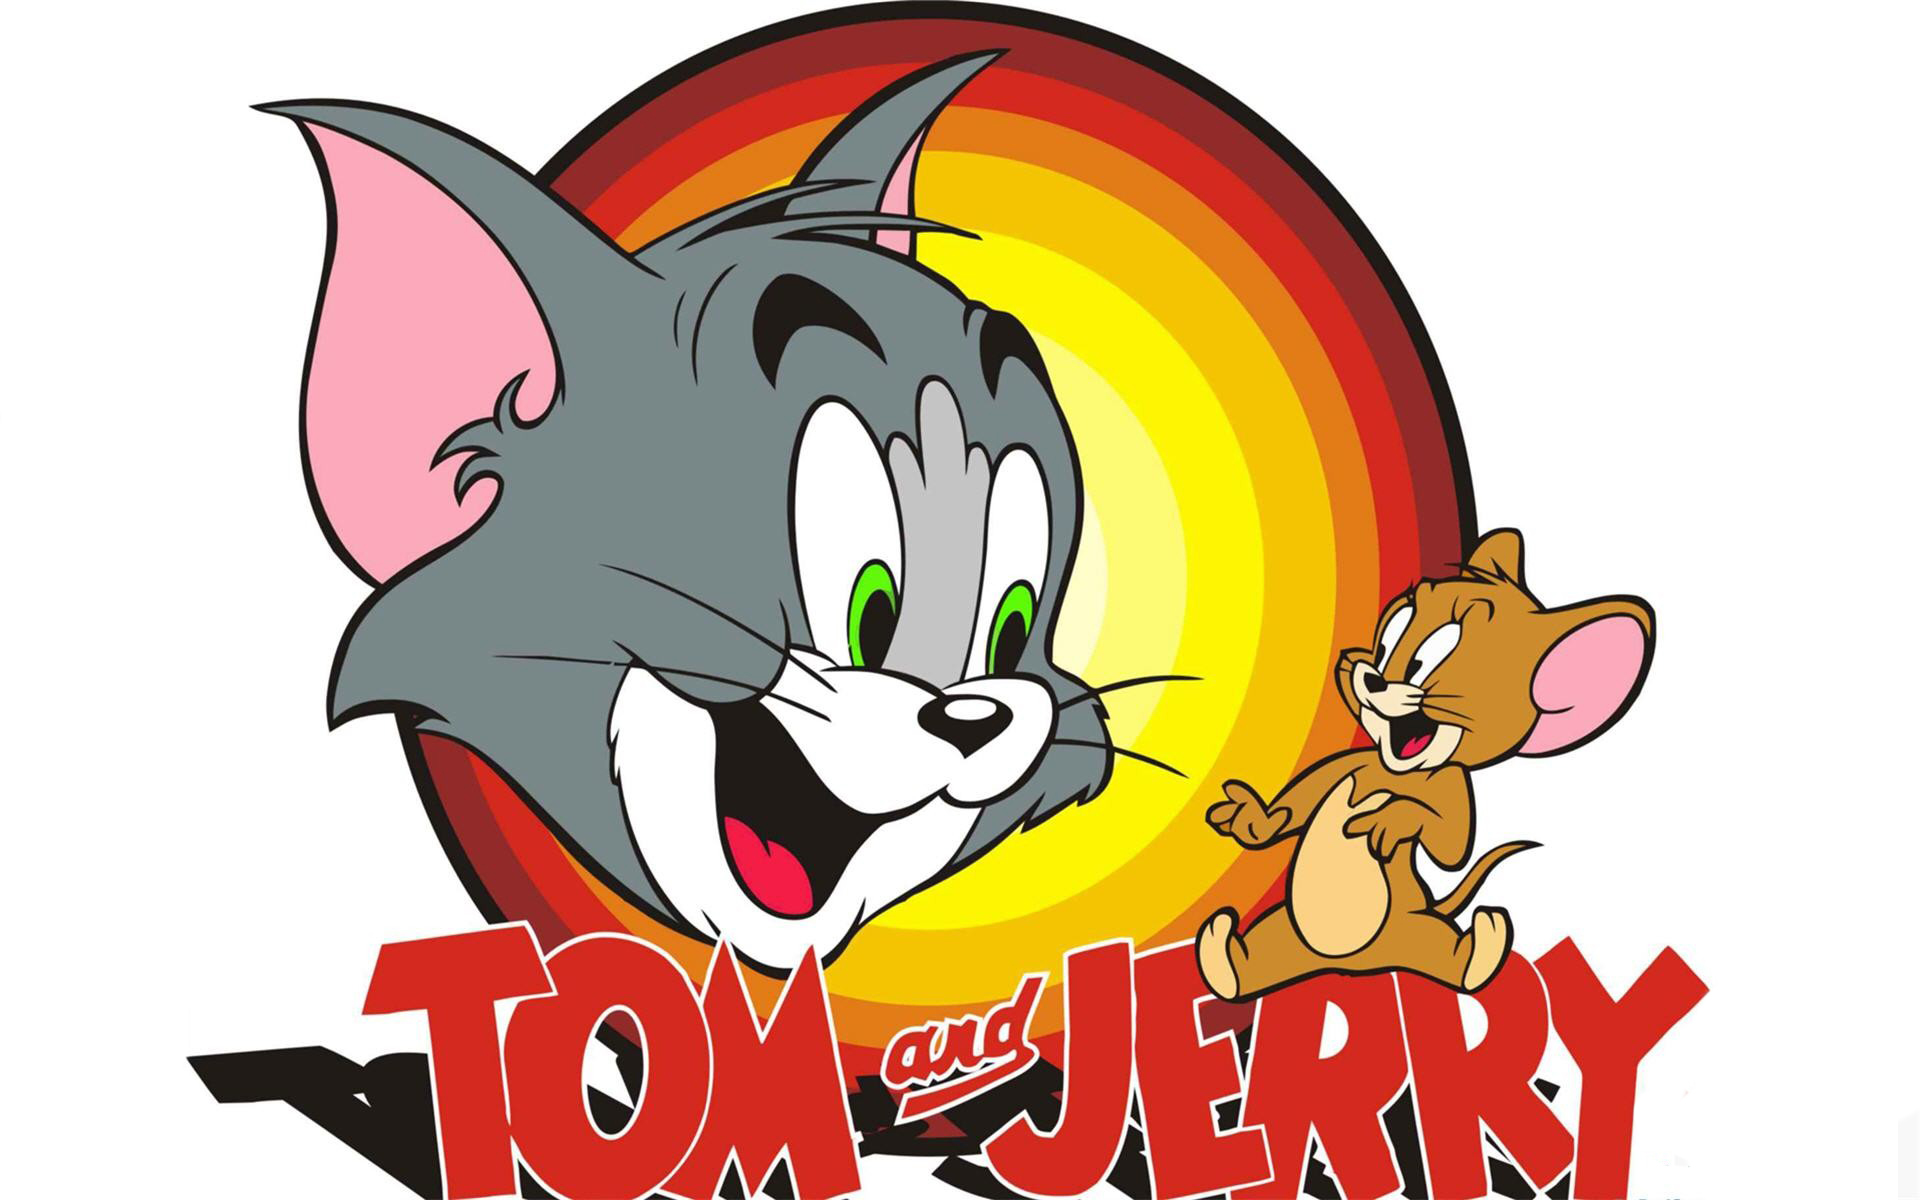 Tom and jerry logo clipart microsoft